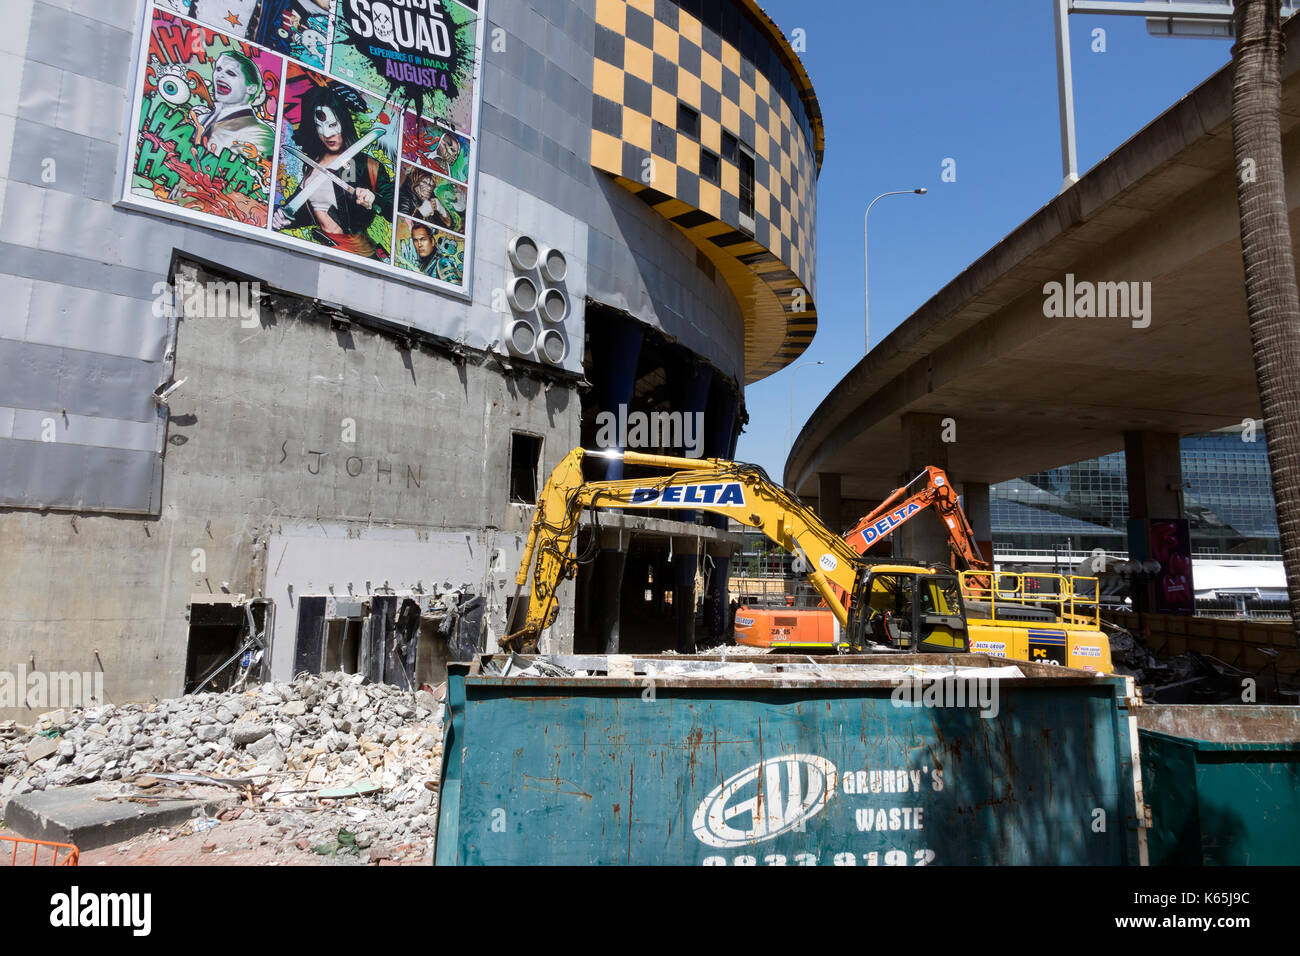 Demolition Machines Start Knocking Down The IMAX Theatre Building Sydney Australia Was The Largest Movie Screen In The World - Stock Image